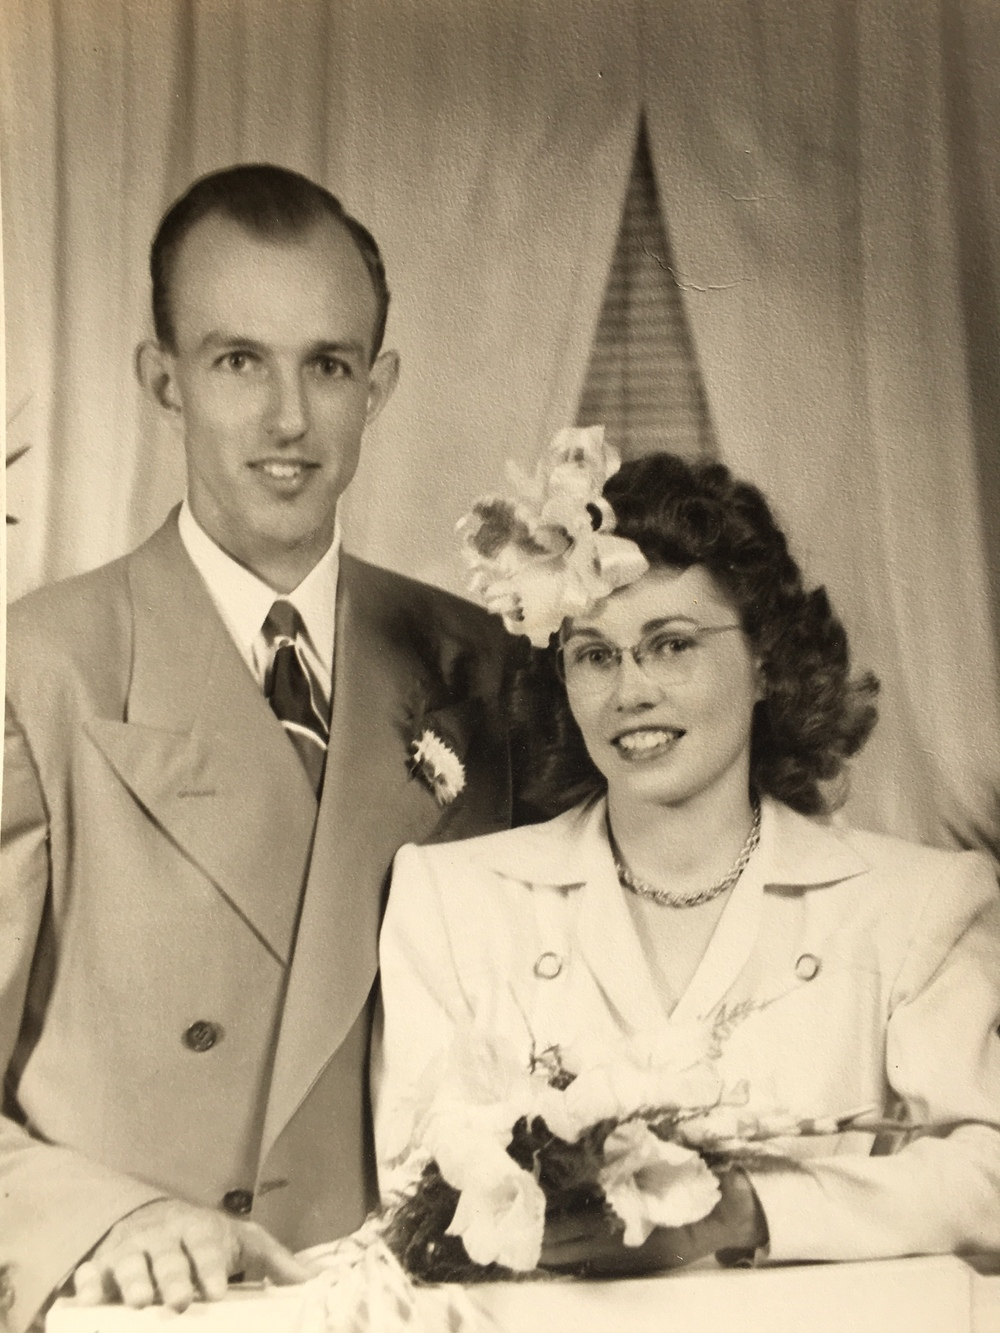 Robert and Ruth Hoshaw - photo courtesy of Stephanie McInroy